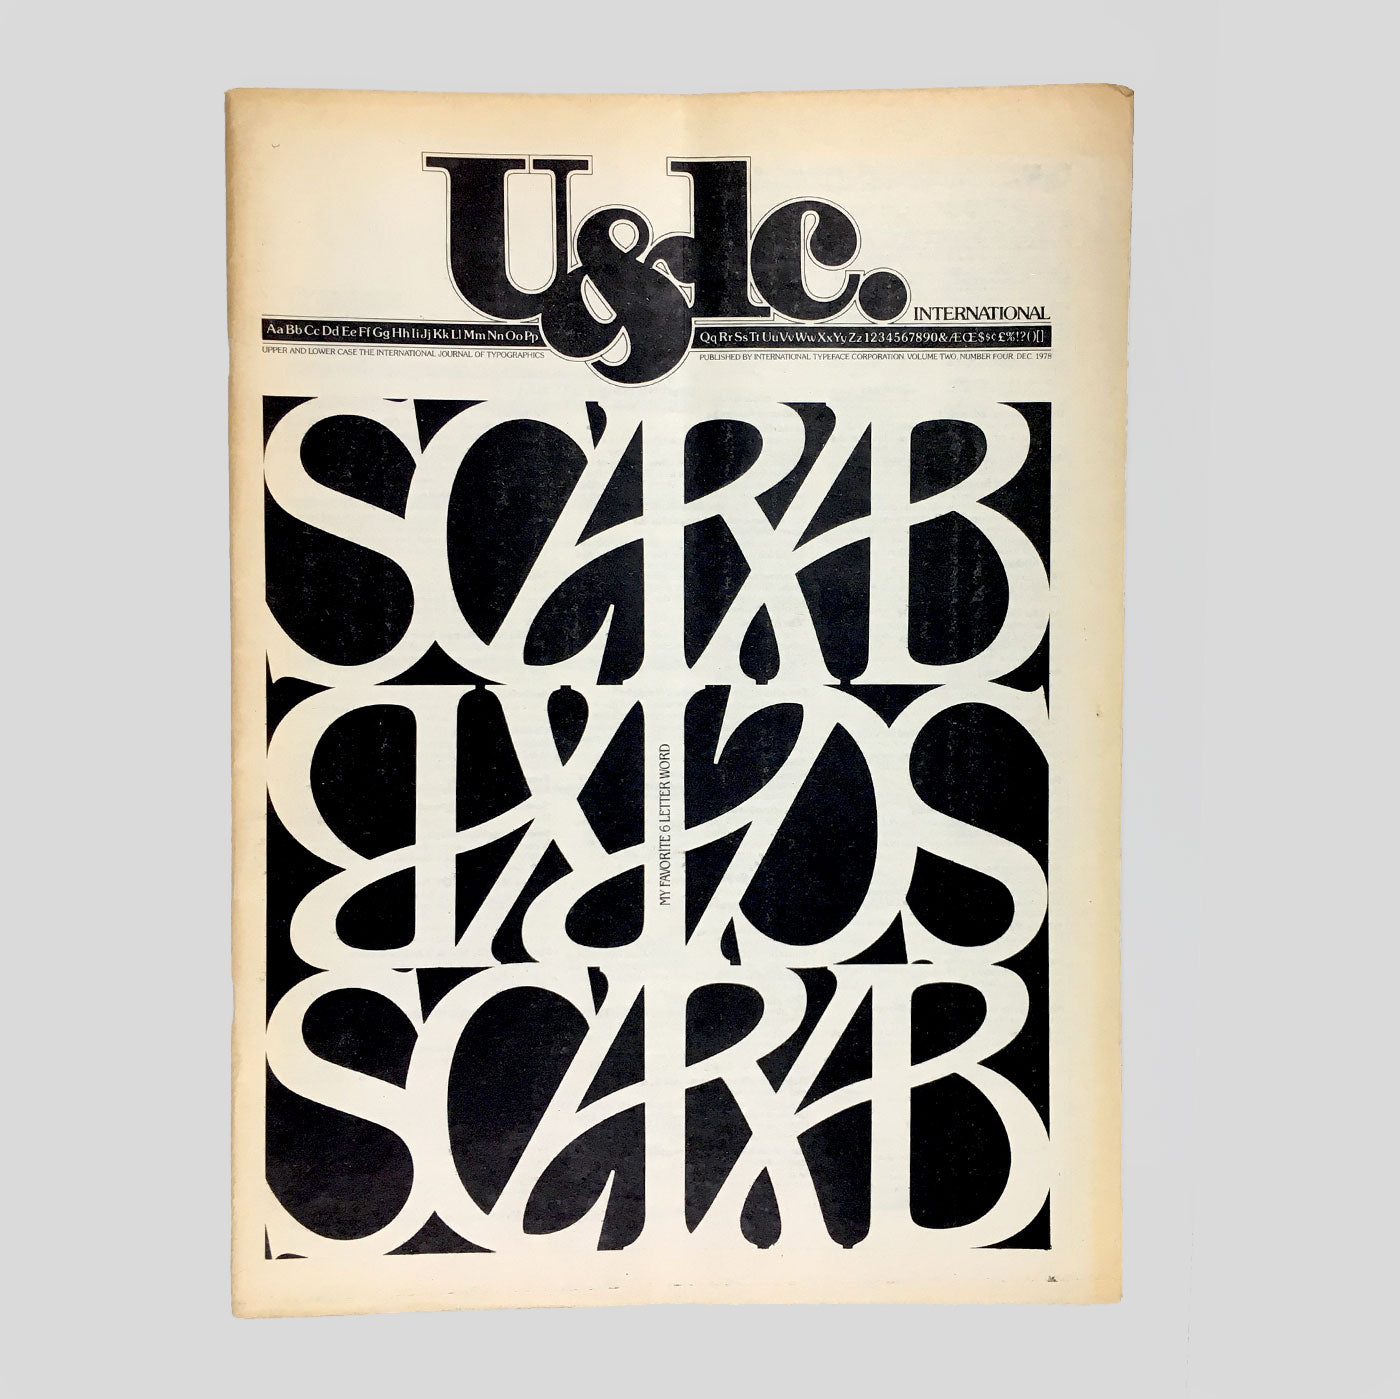 U&lc Vol. 2, No. 4, Dec 1978